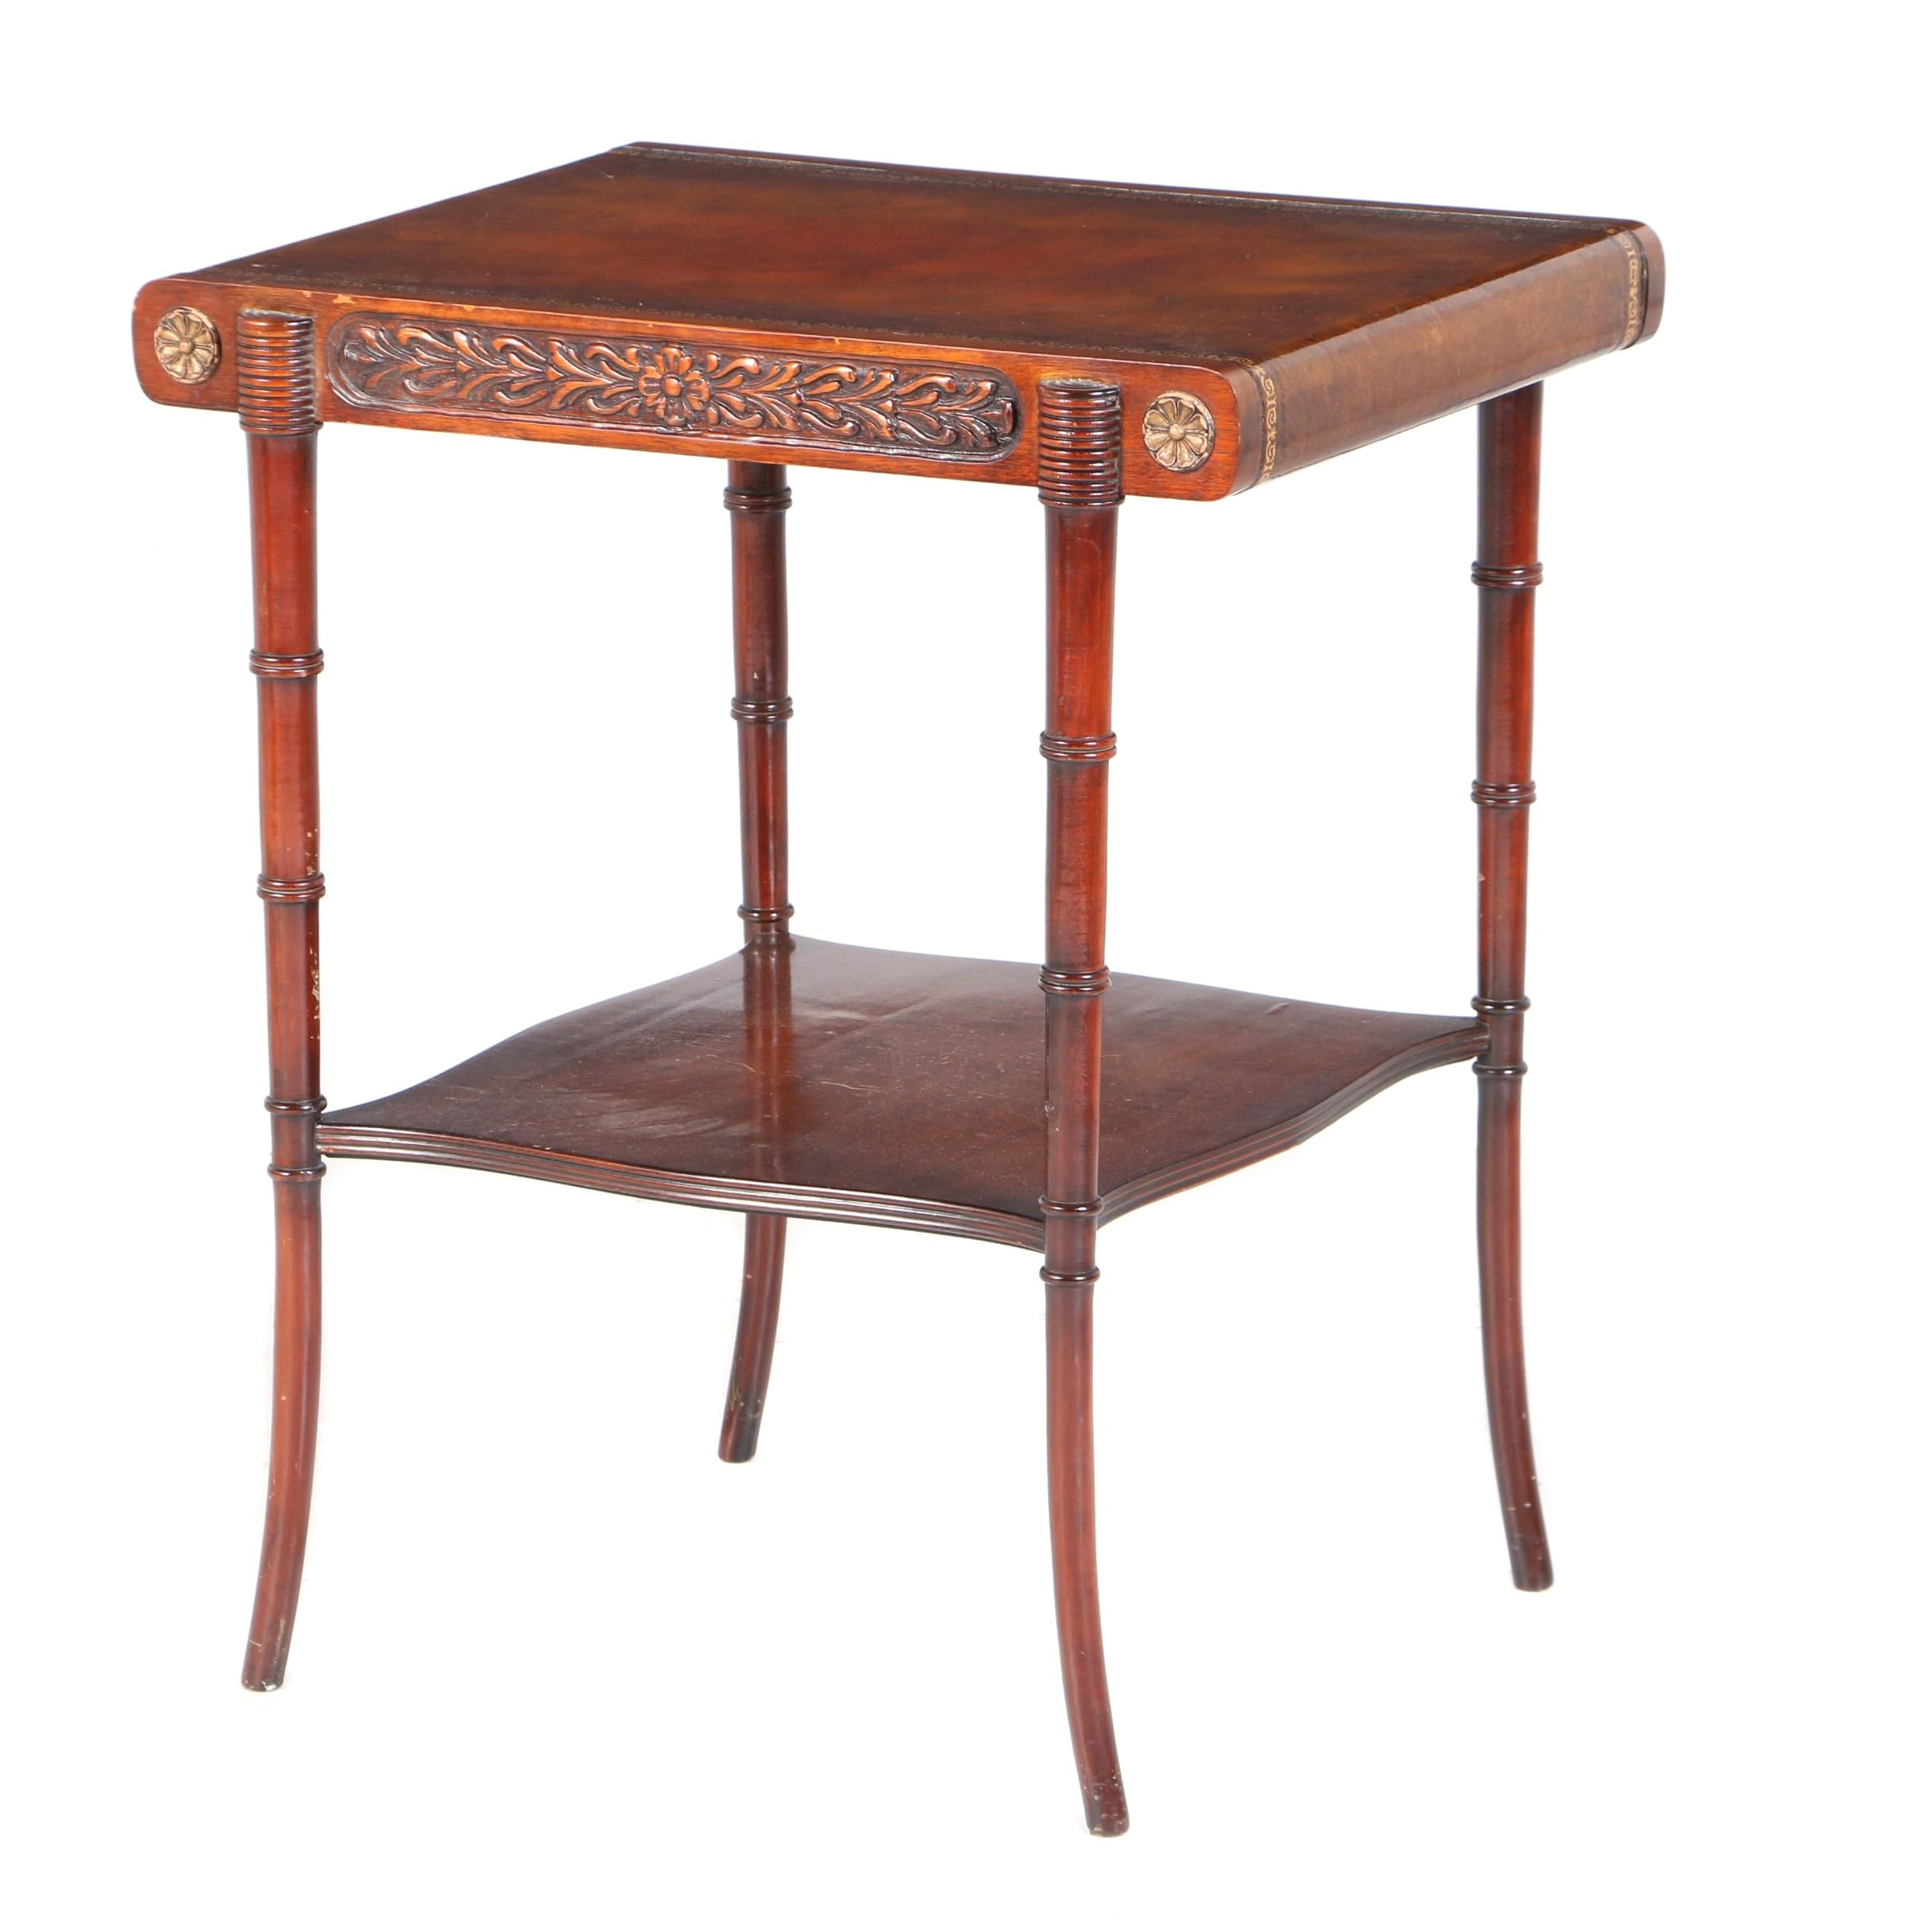 George III Style Mahogany Two-Tier Side Table, 20th Century